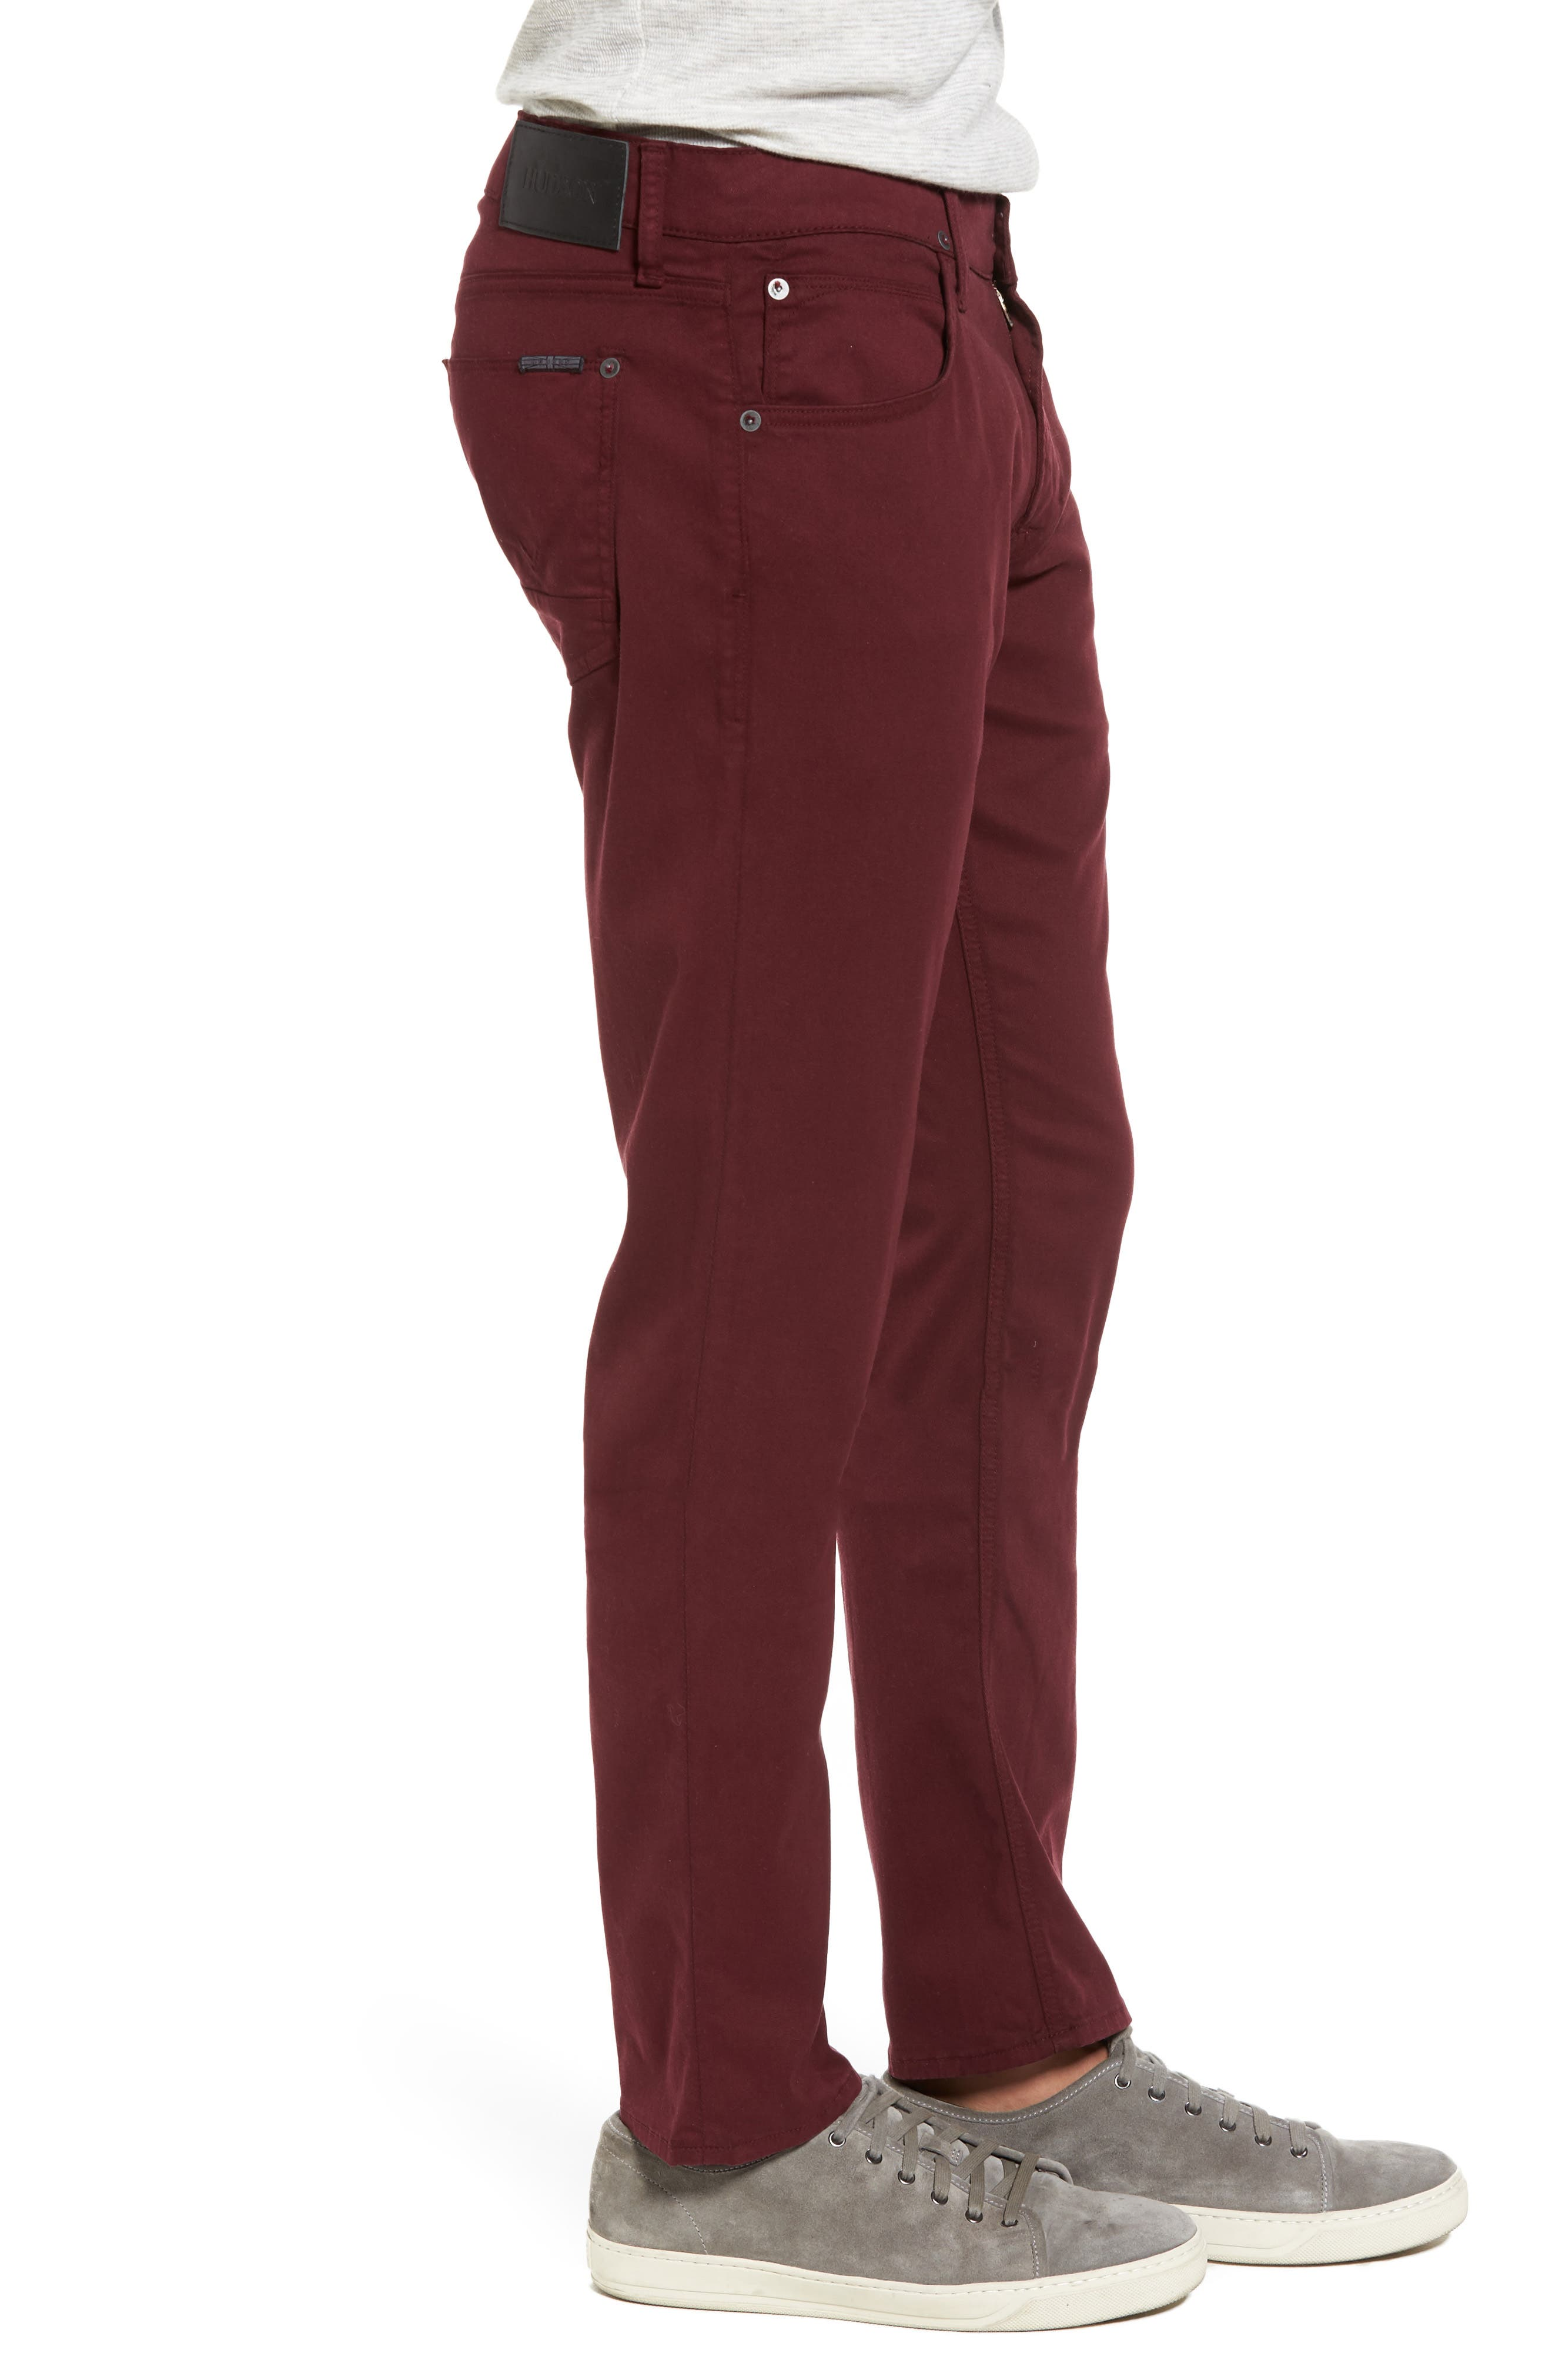 Blake Slim Fit Jeans,                             Alternate thumbnail 3, color,                             BURGUNDY